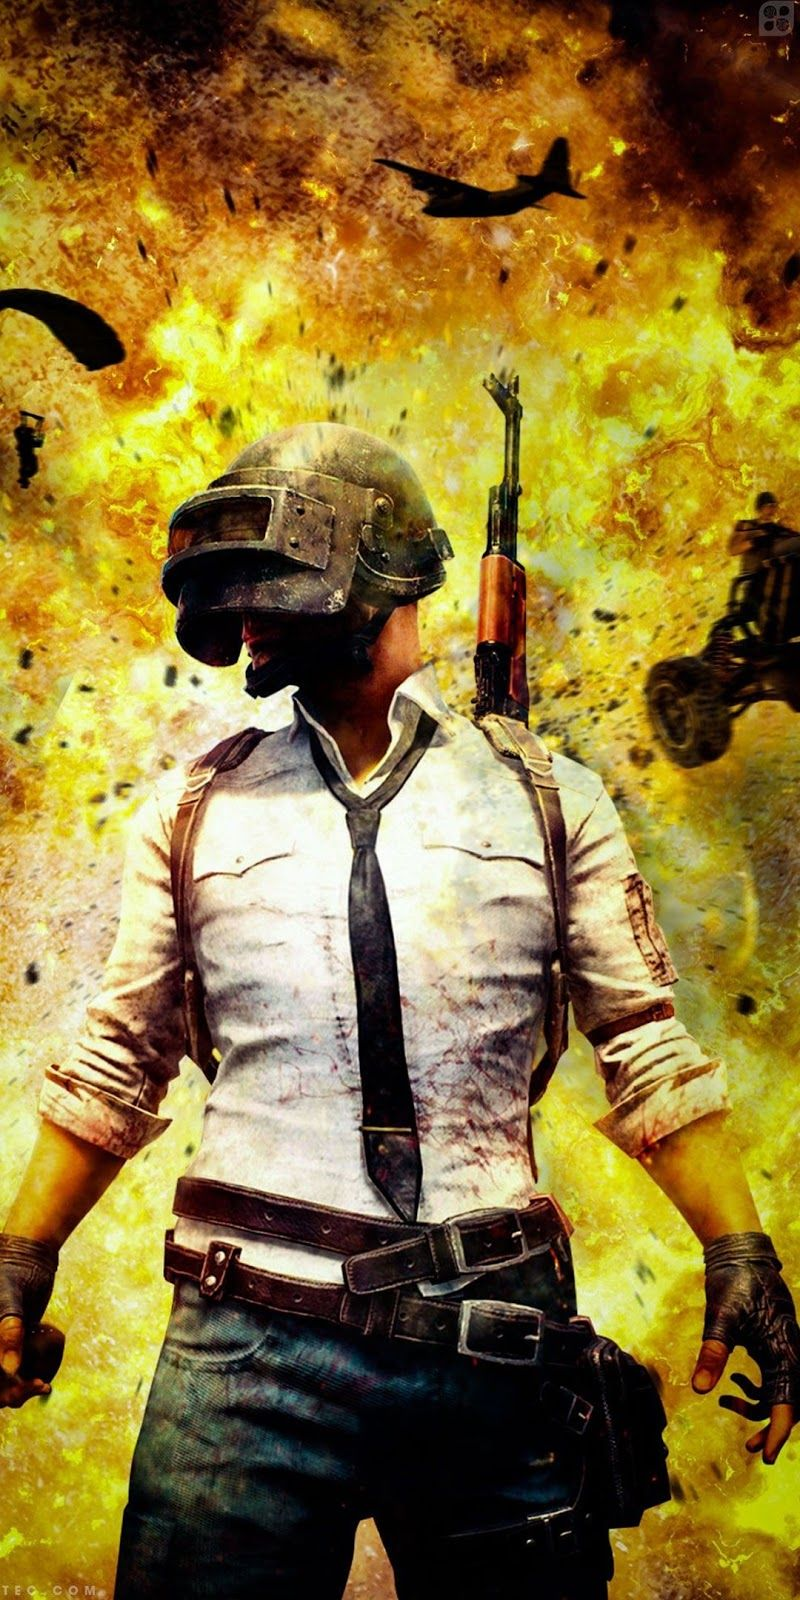 Pubg Wallpaper New Wallpaper Hd Hd Wallpapers For Mobile Mobile Wallpaper Android